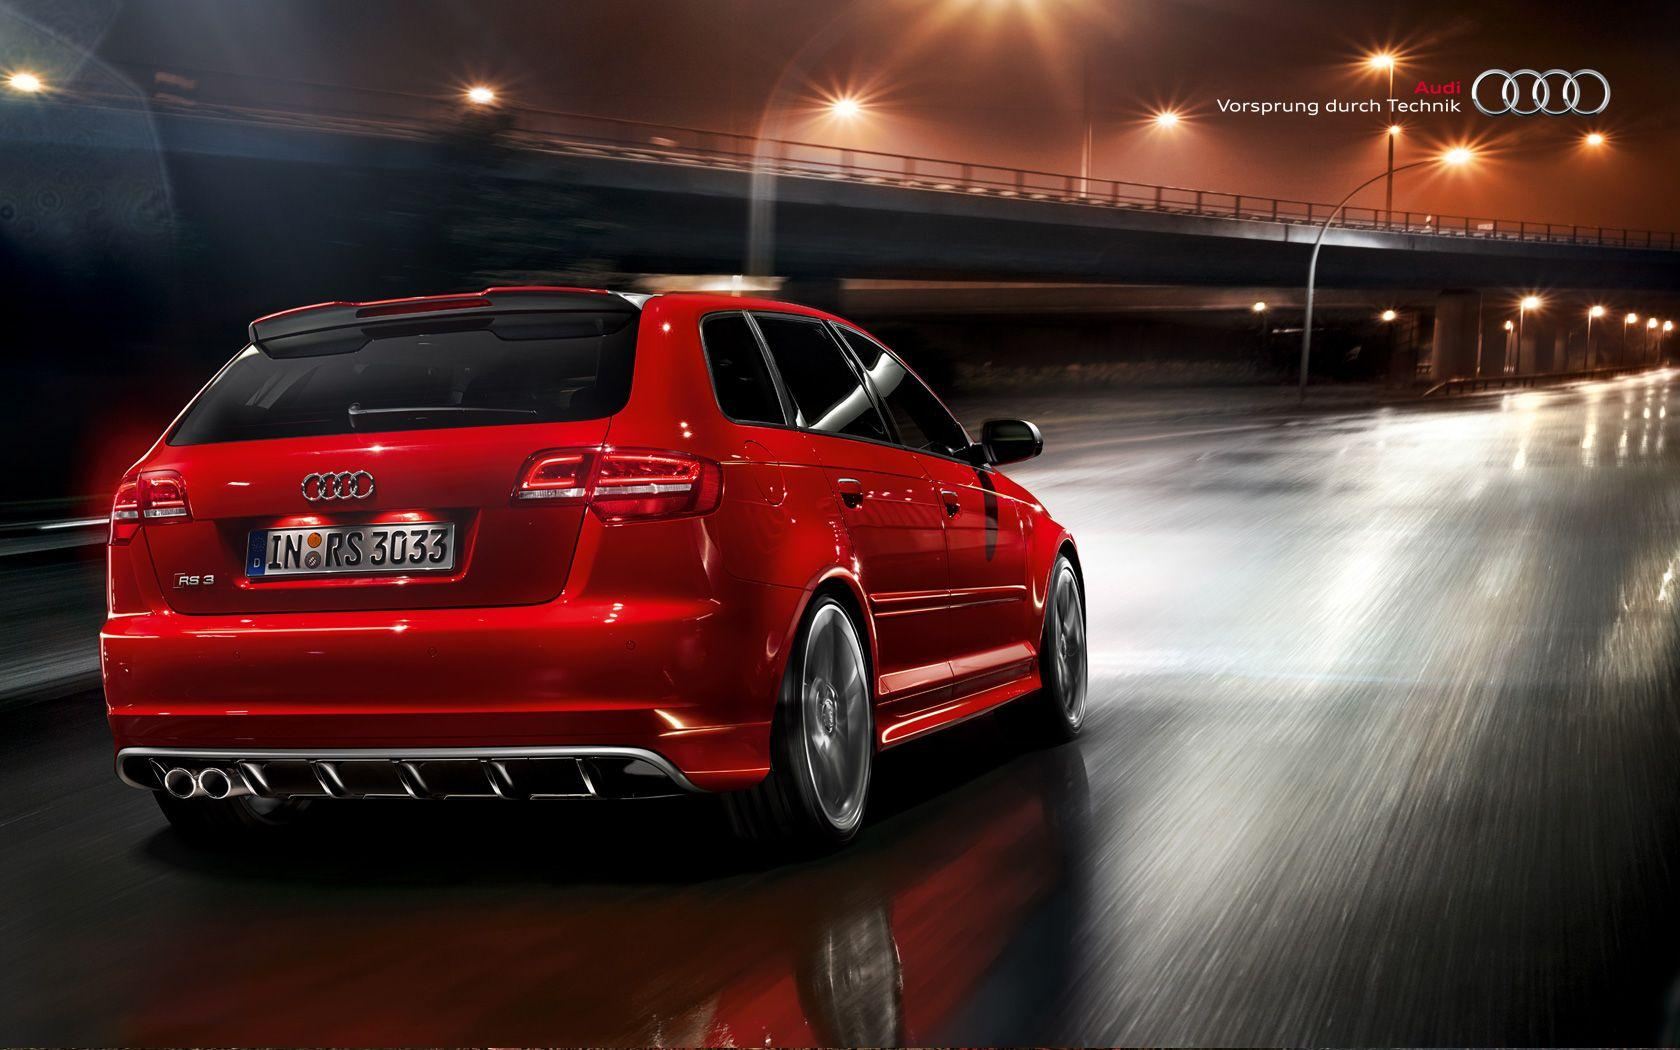 HQFX Wallpapers: Audi Rs3 Wallpapers, Audi Rs3 Wallpapers For